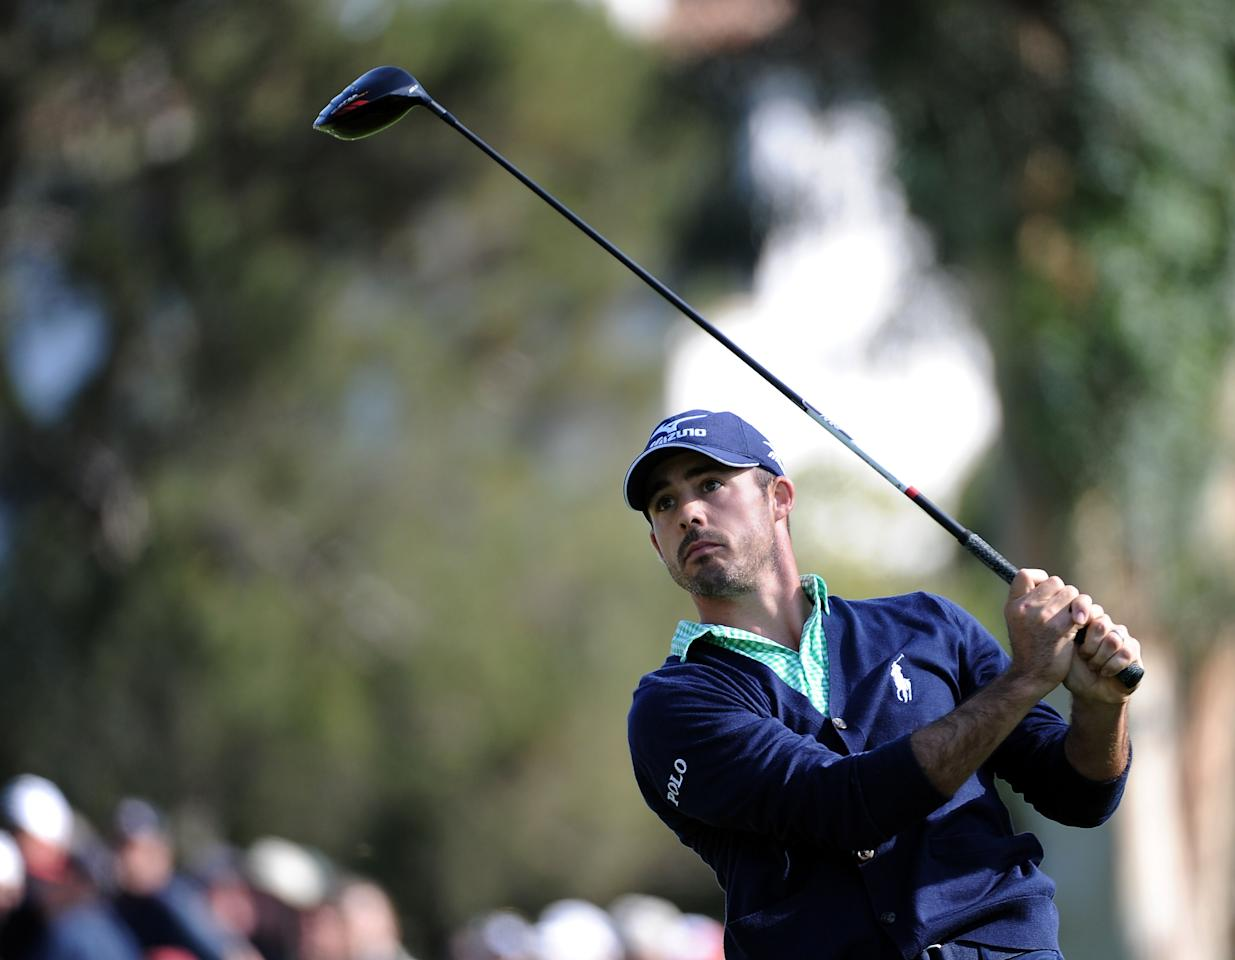 PACIFIC PALISADES, CA - FEBRUARY 18:  Jonathan Byrd hits driver on the second hole during the third round of the Northern Trust Open at the Riviera Country Club on February 18, 2012 in Pacific Palisades, California.  (Photo by Harry How/Getty Images)